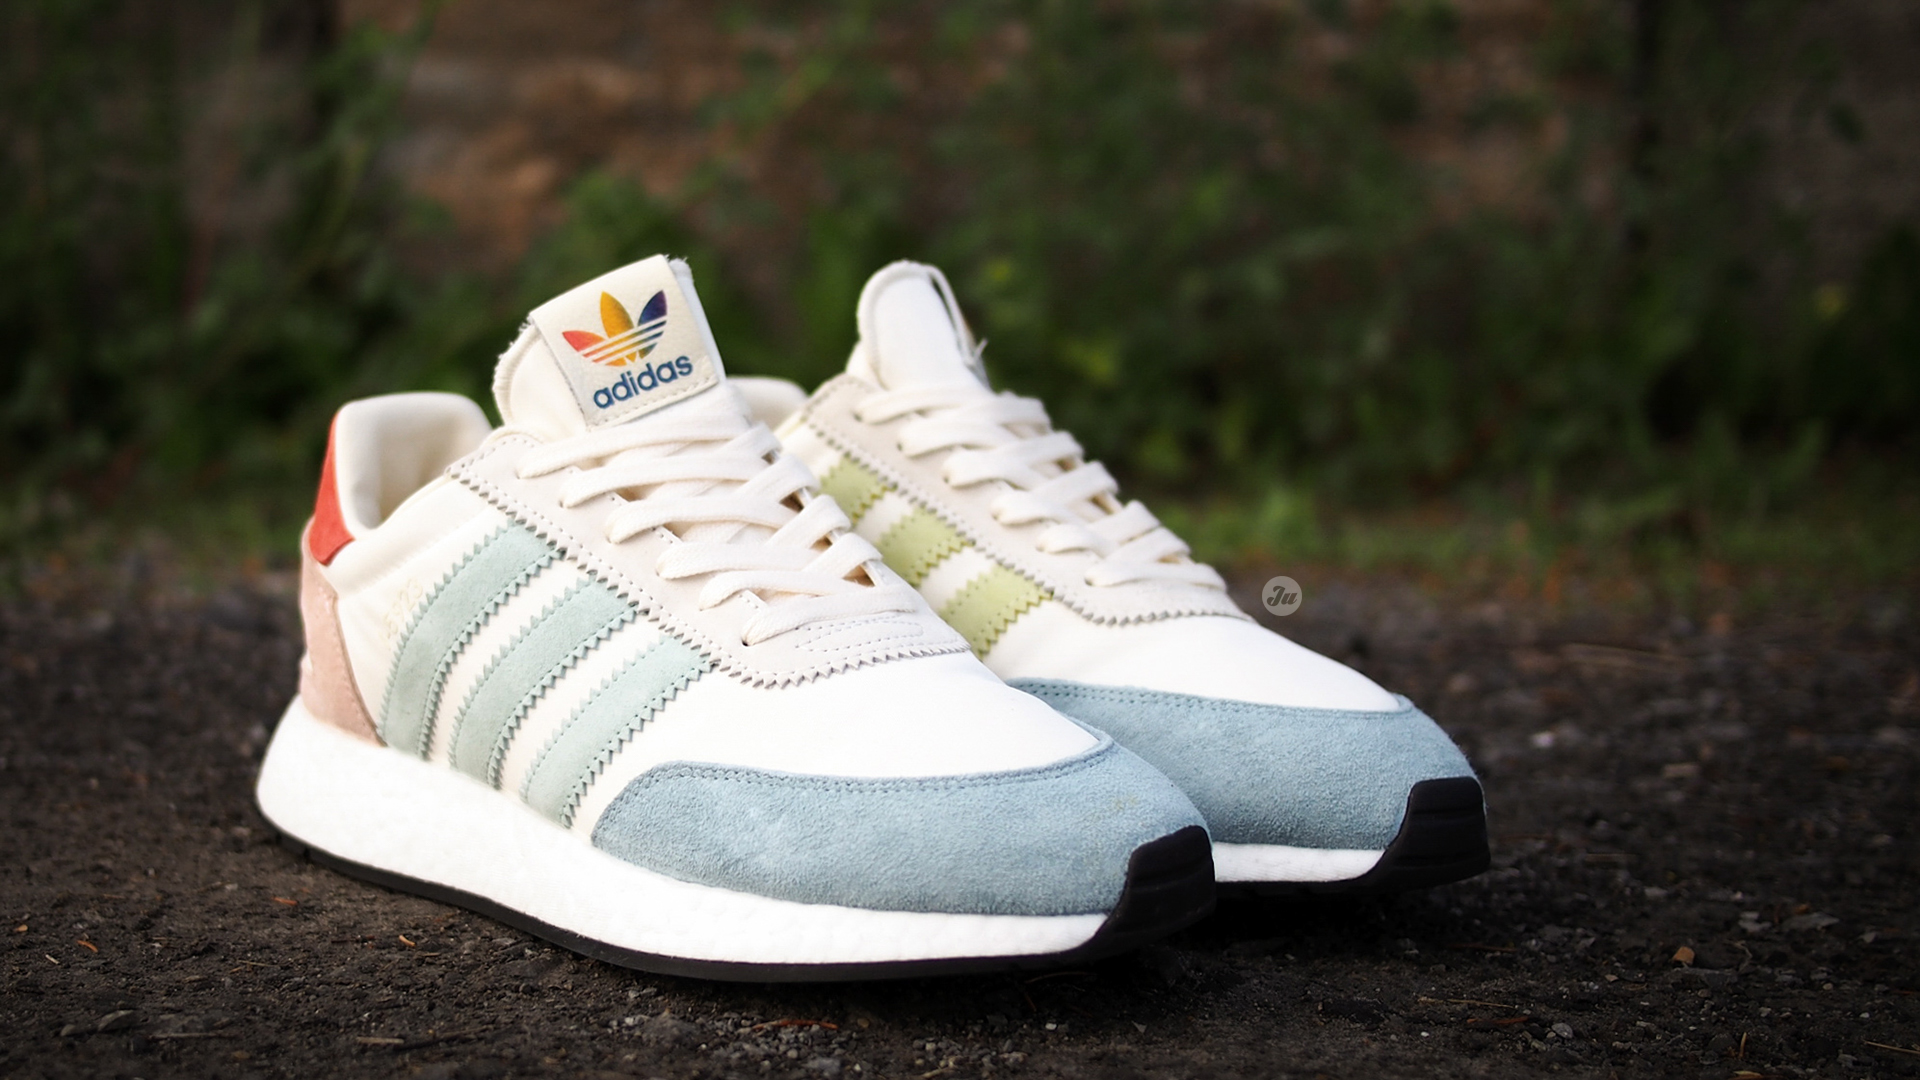 393301dfc63bb0 First Adidas kicks in a long time  a review of the I-5923 Runner ...